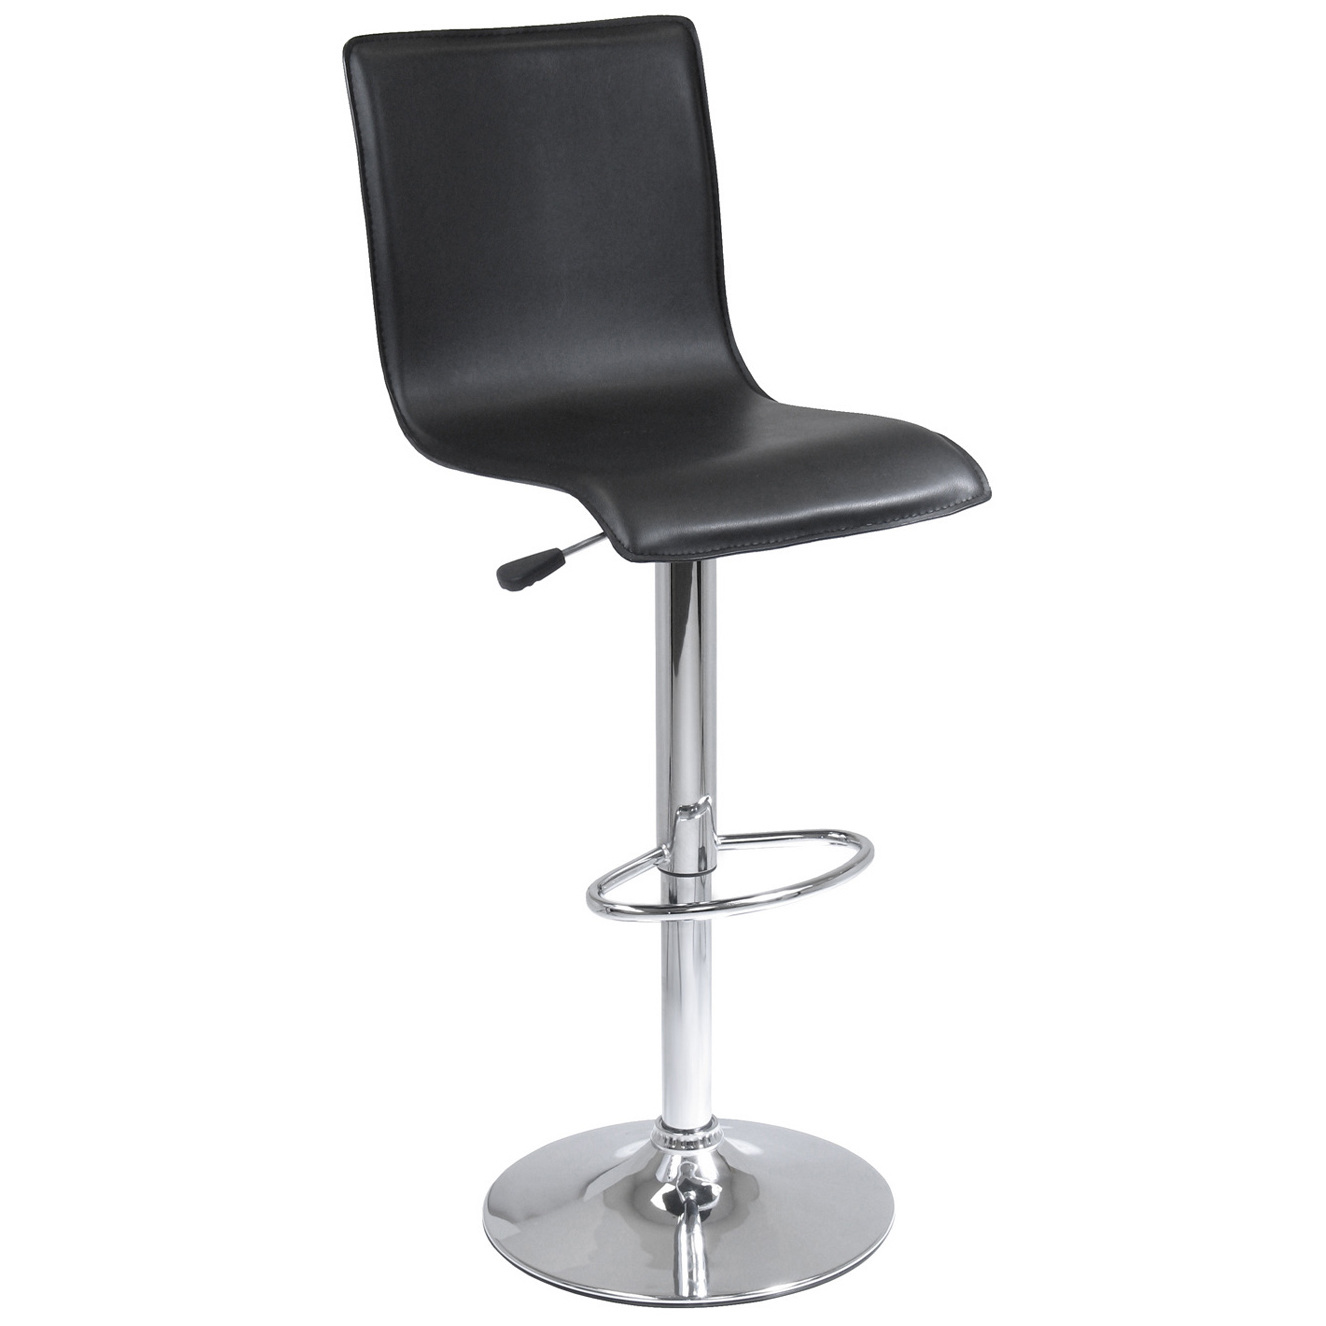 Winsome Wood 93145 Black Faux Leather & Chrome Swivel Stool With Back